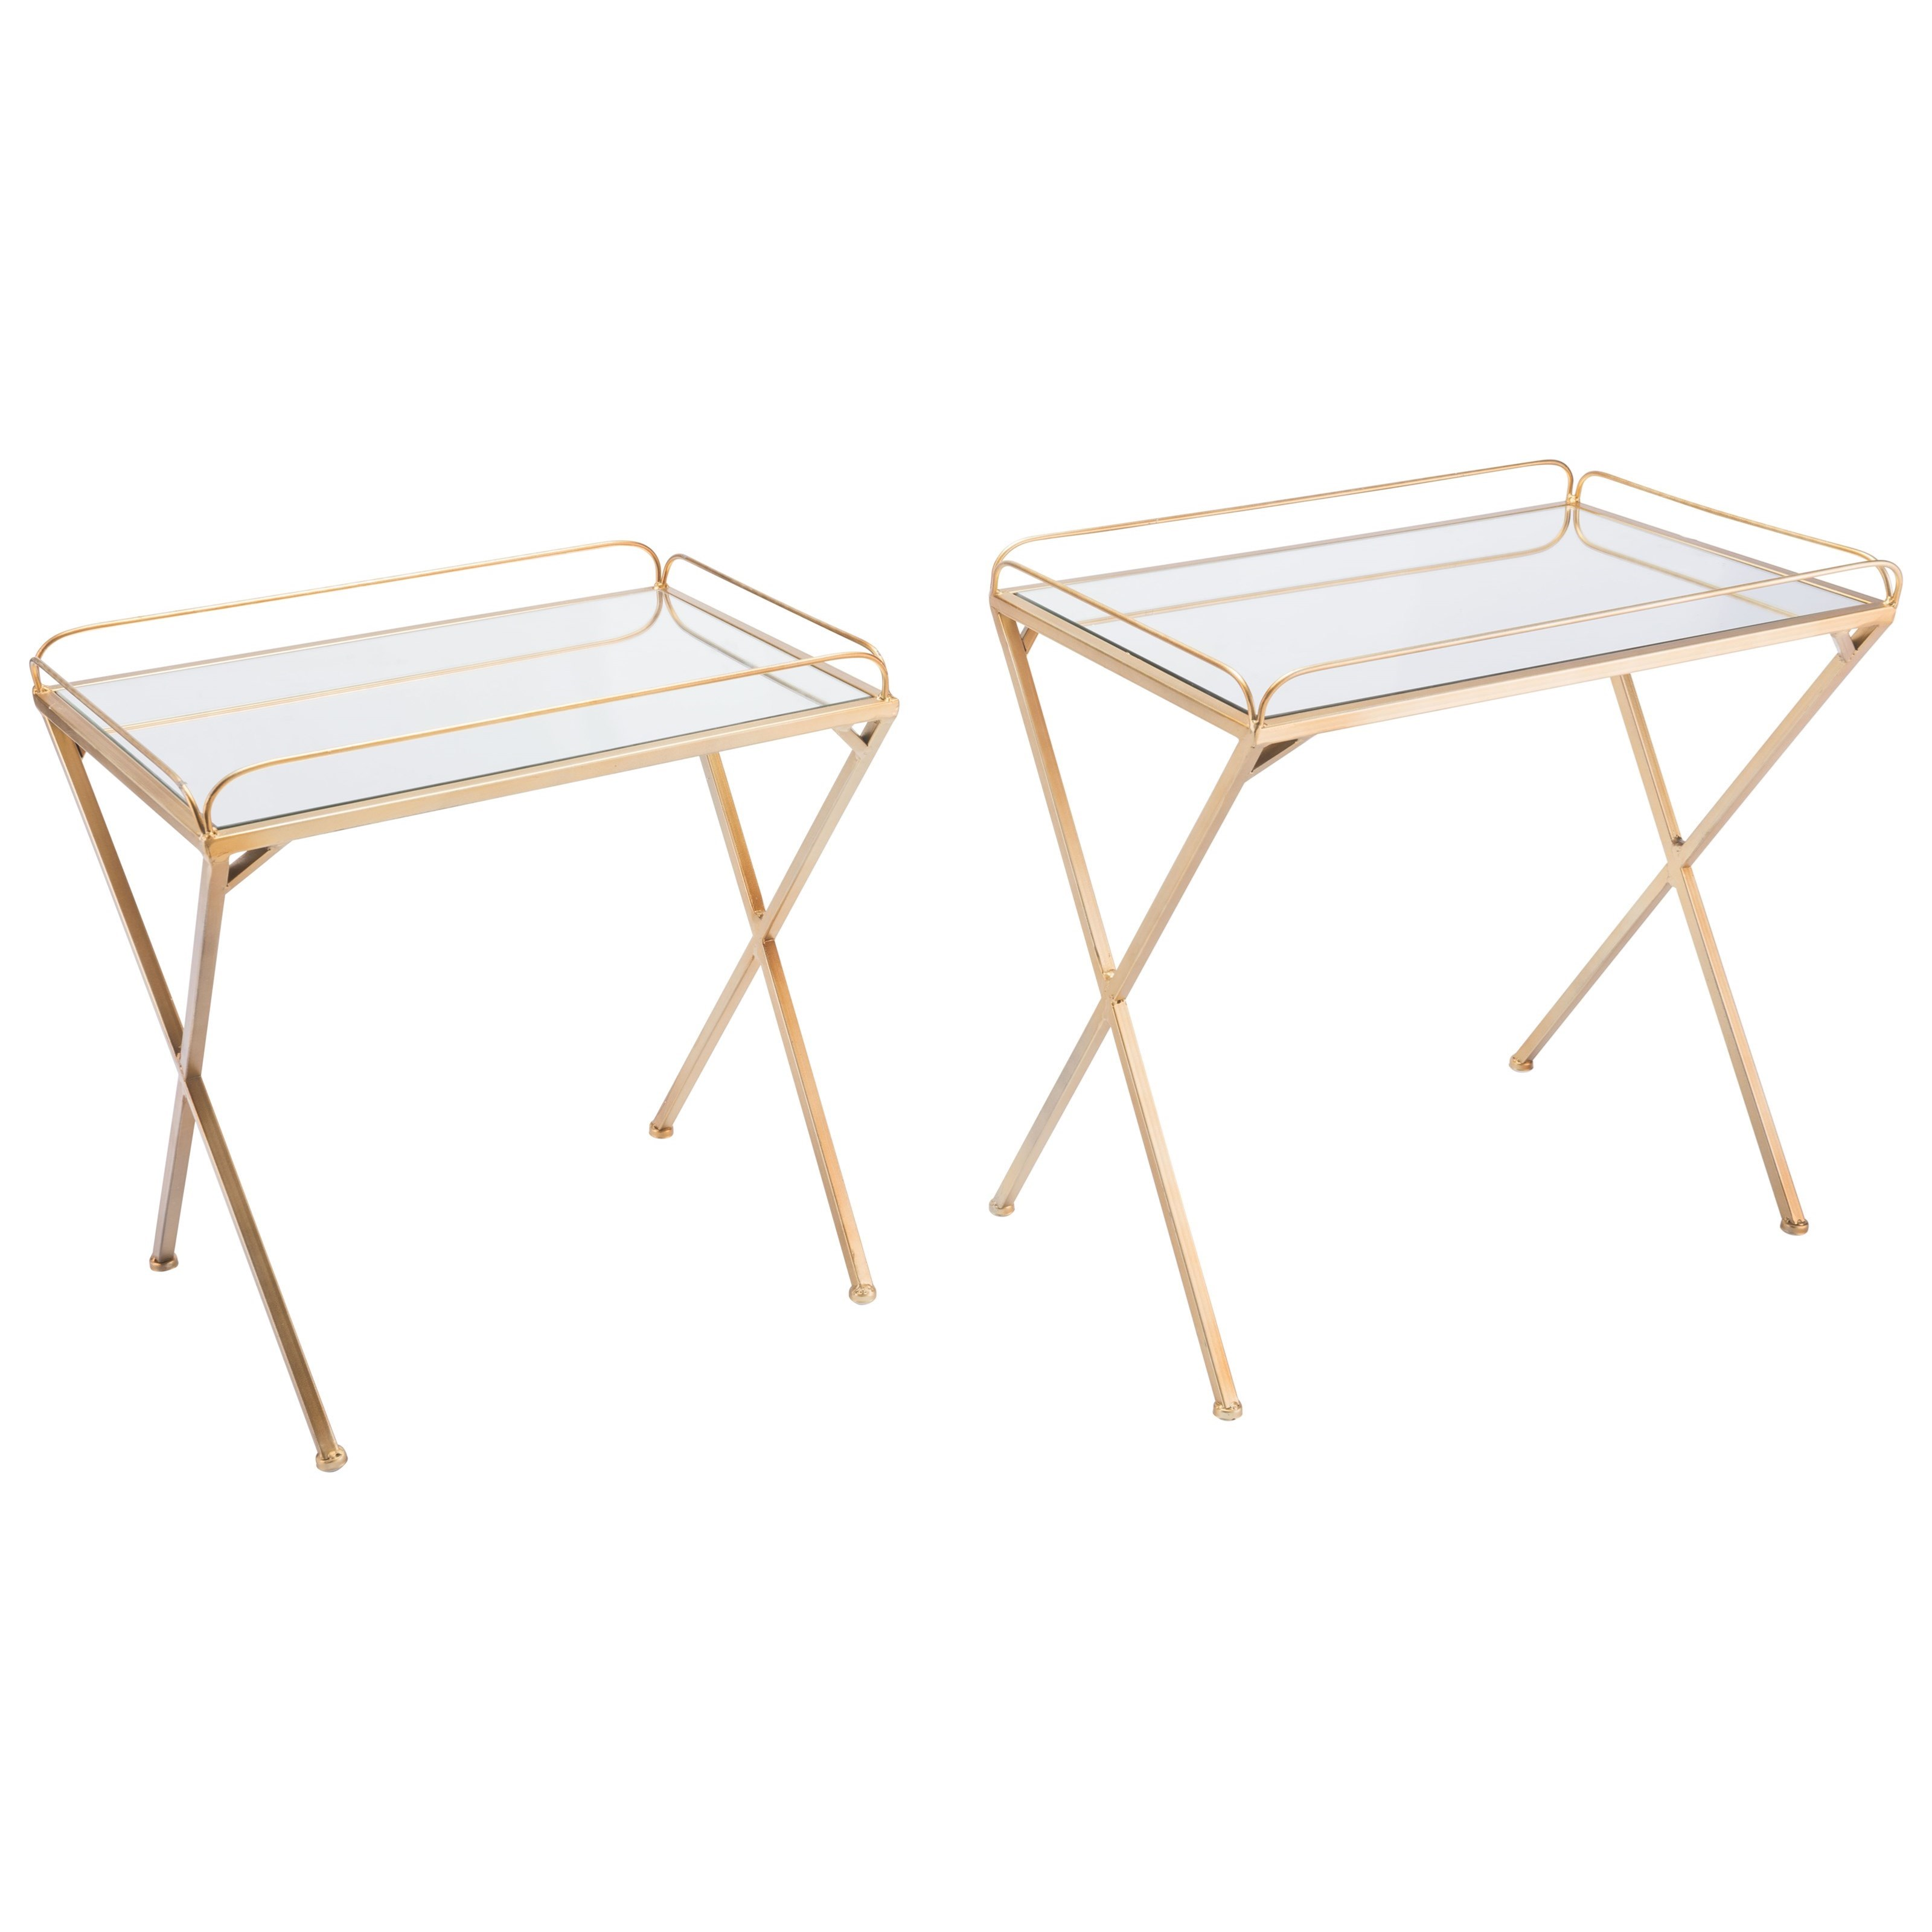 Zuo Accent Tables Opposite Set of 2 Tables - Item Number: A10773